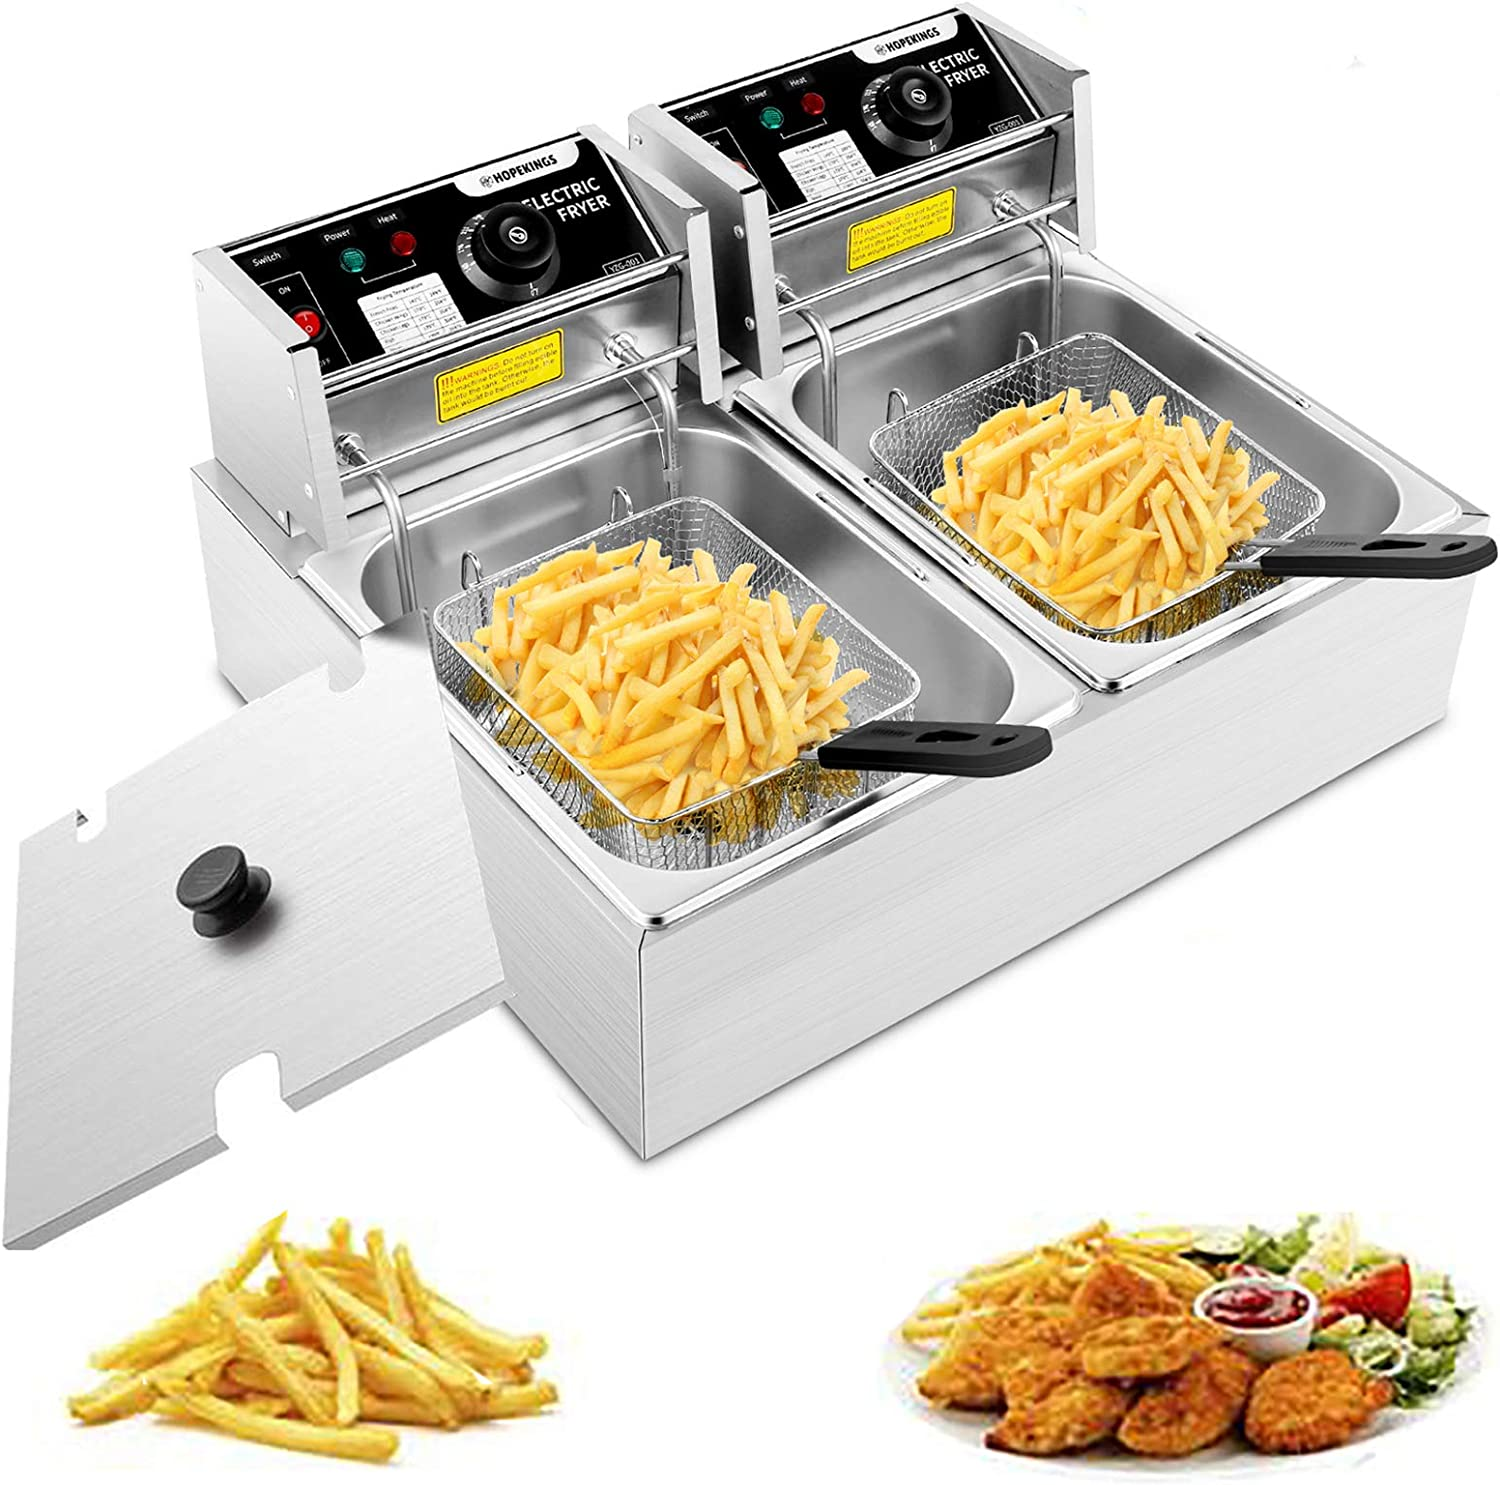 Hopekings Deep Fryer with Baskets, 12.7QT Stainless Steel Commercial Deep Fryer with Thermostat, for Turkey, French Fries, Donuts